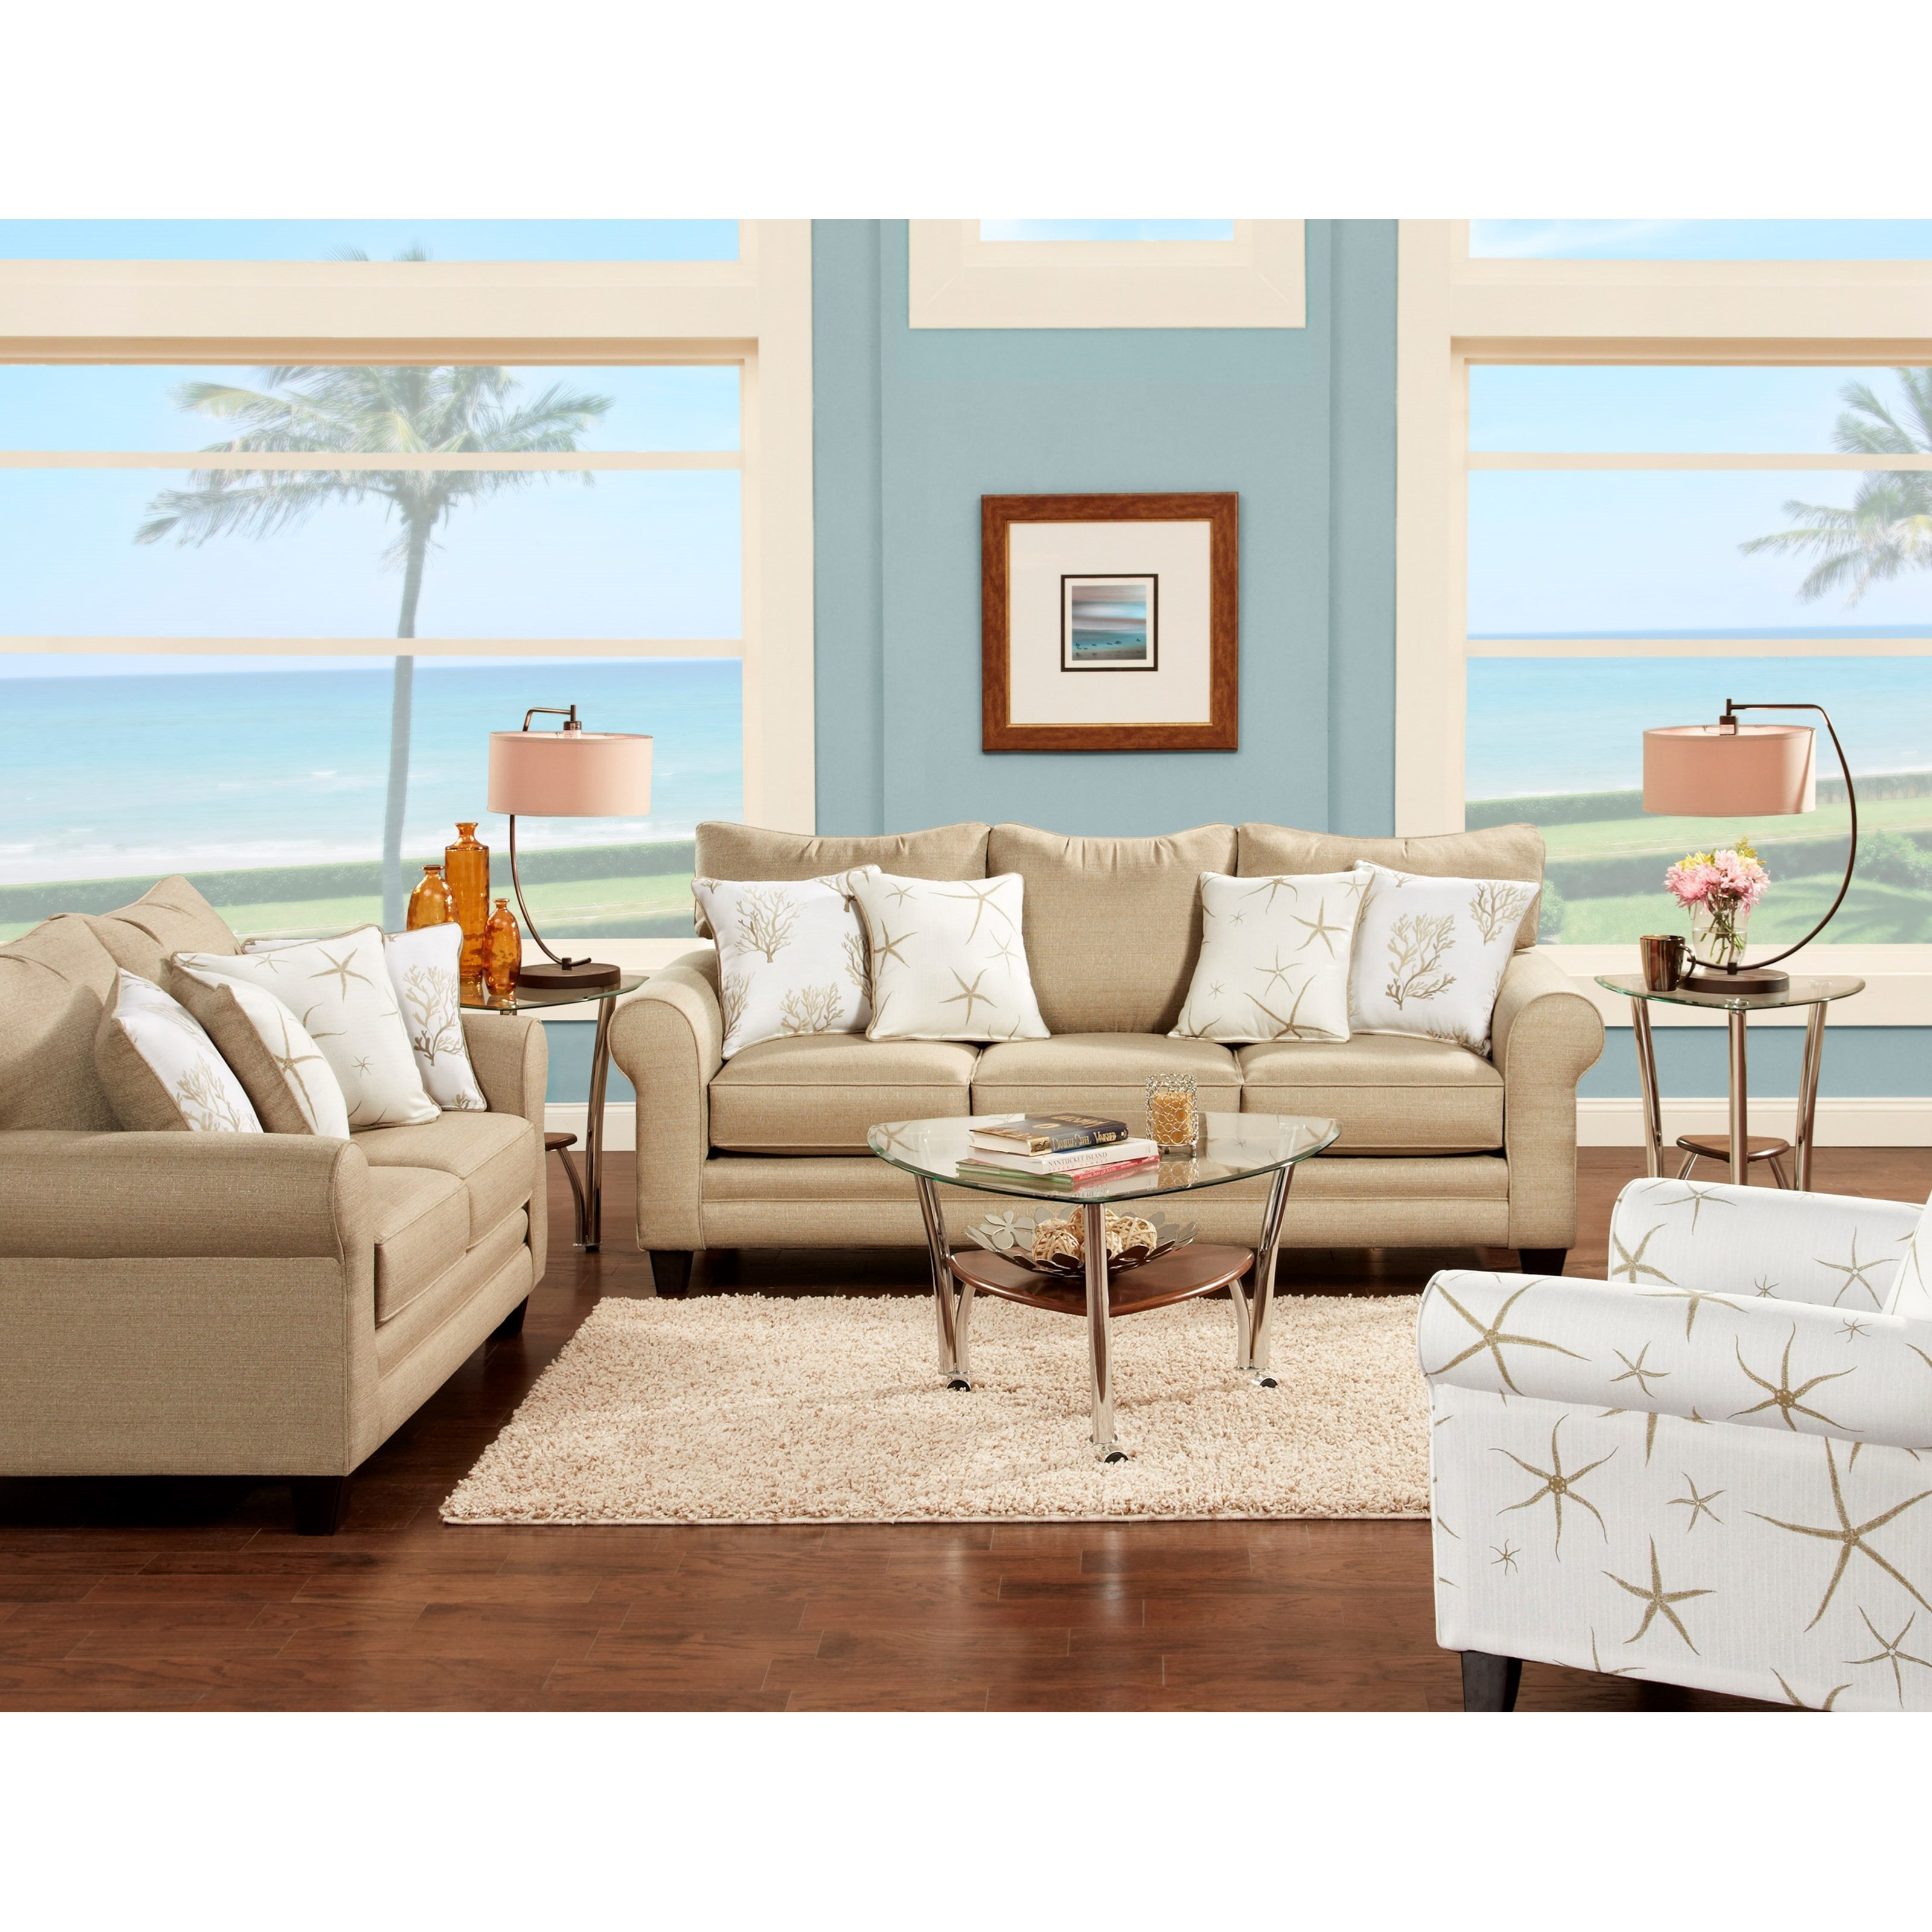 Fusion Furniture 1140 Stationary Living Room Group - Item Number: 1140 Living Room Group 7